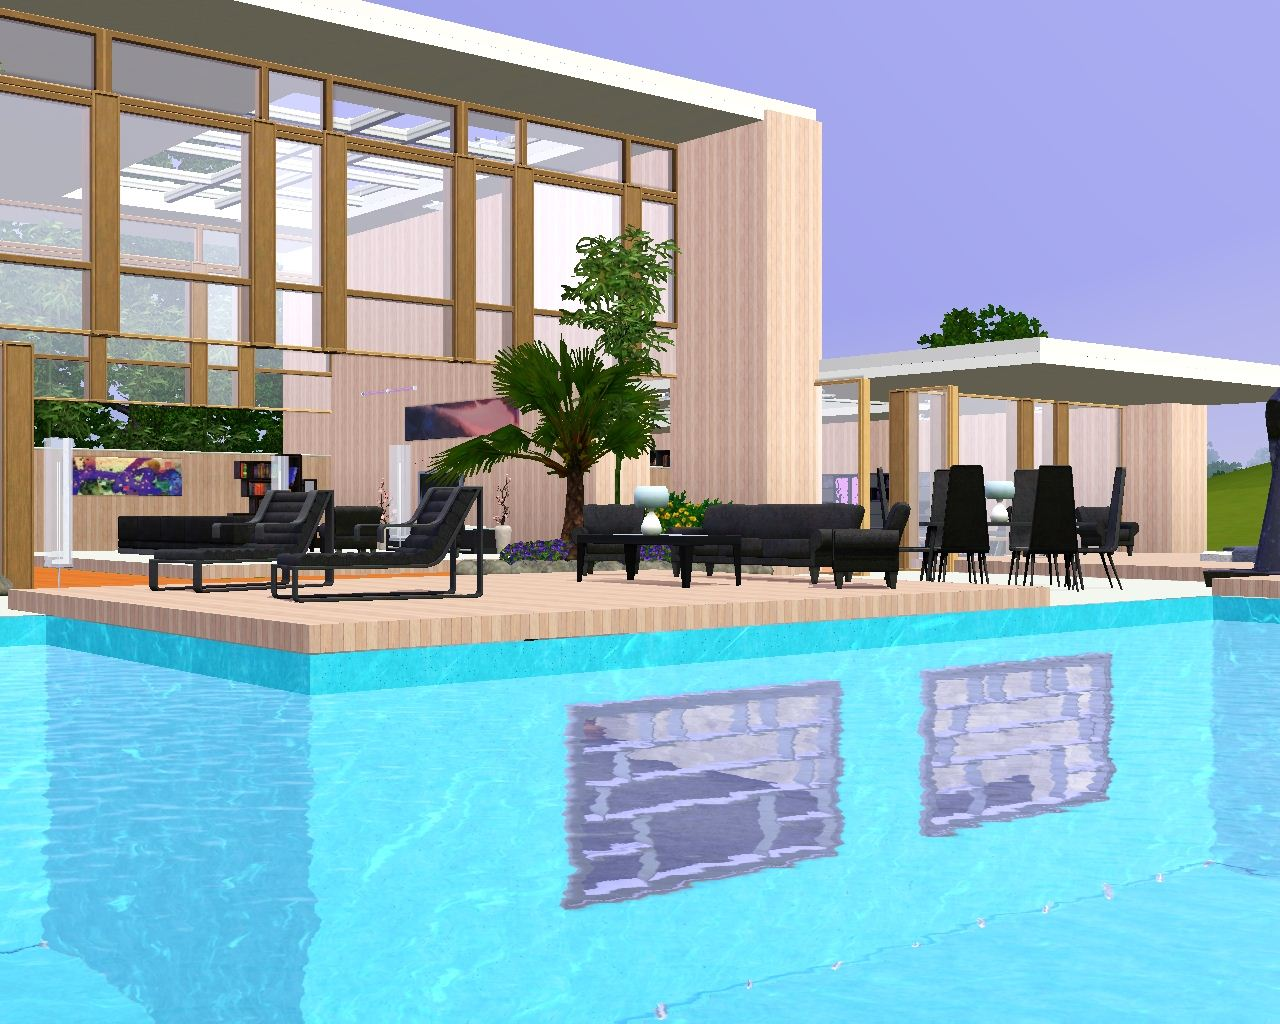 Mod the sims modern pool house - Modern house with pool ...